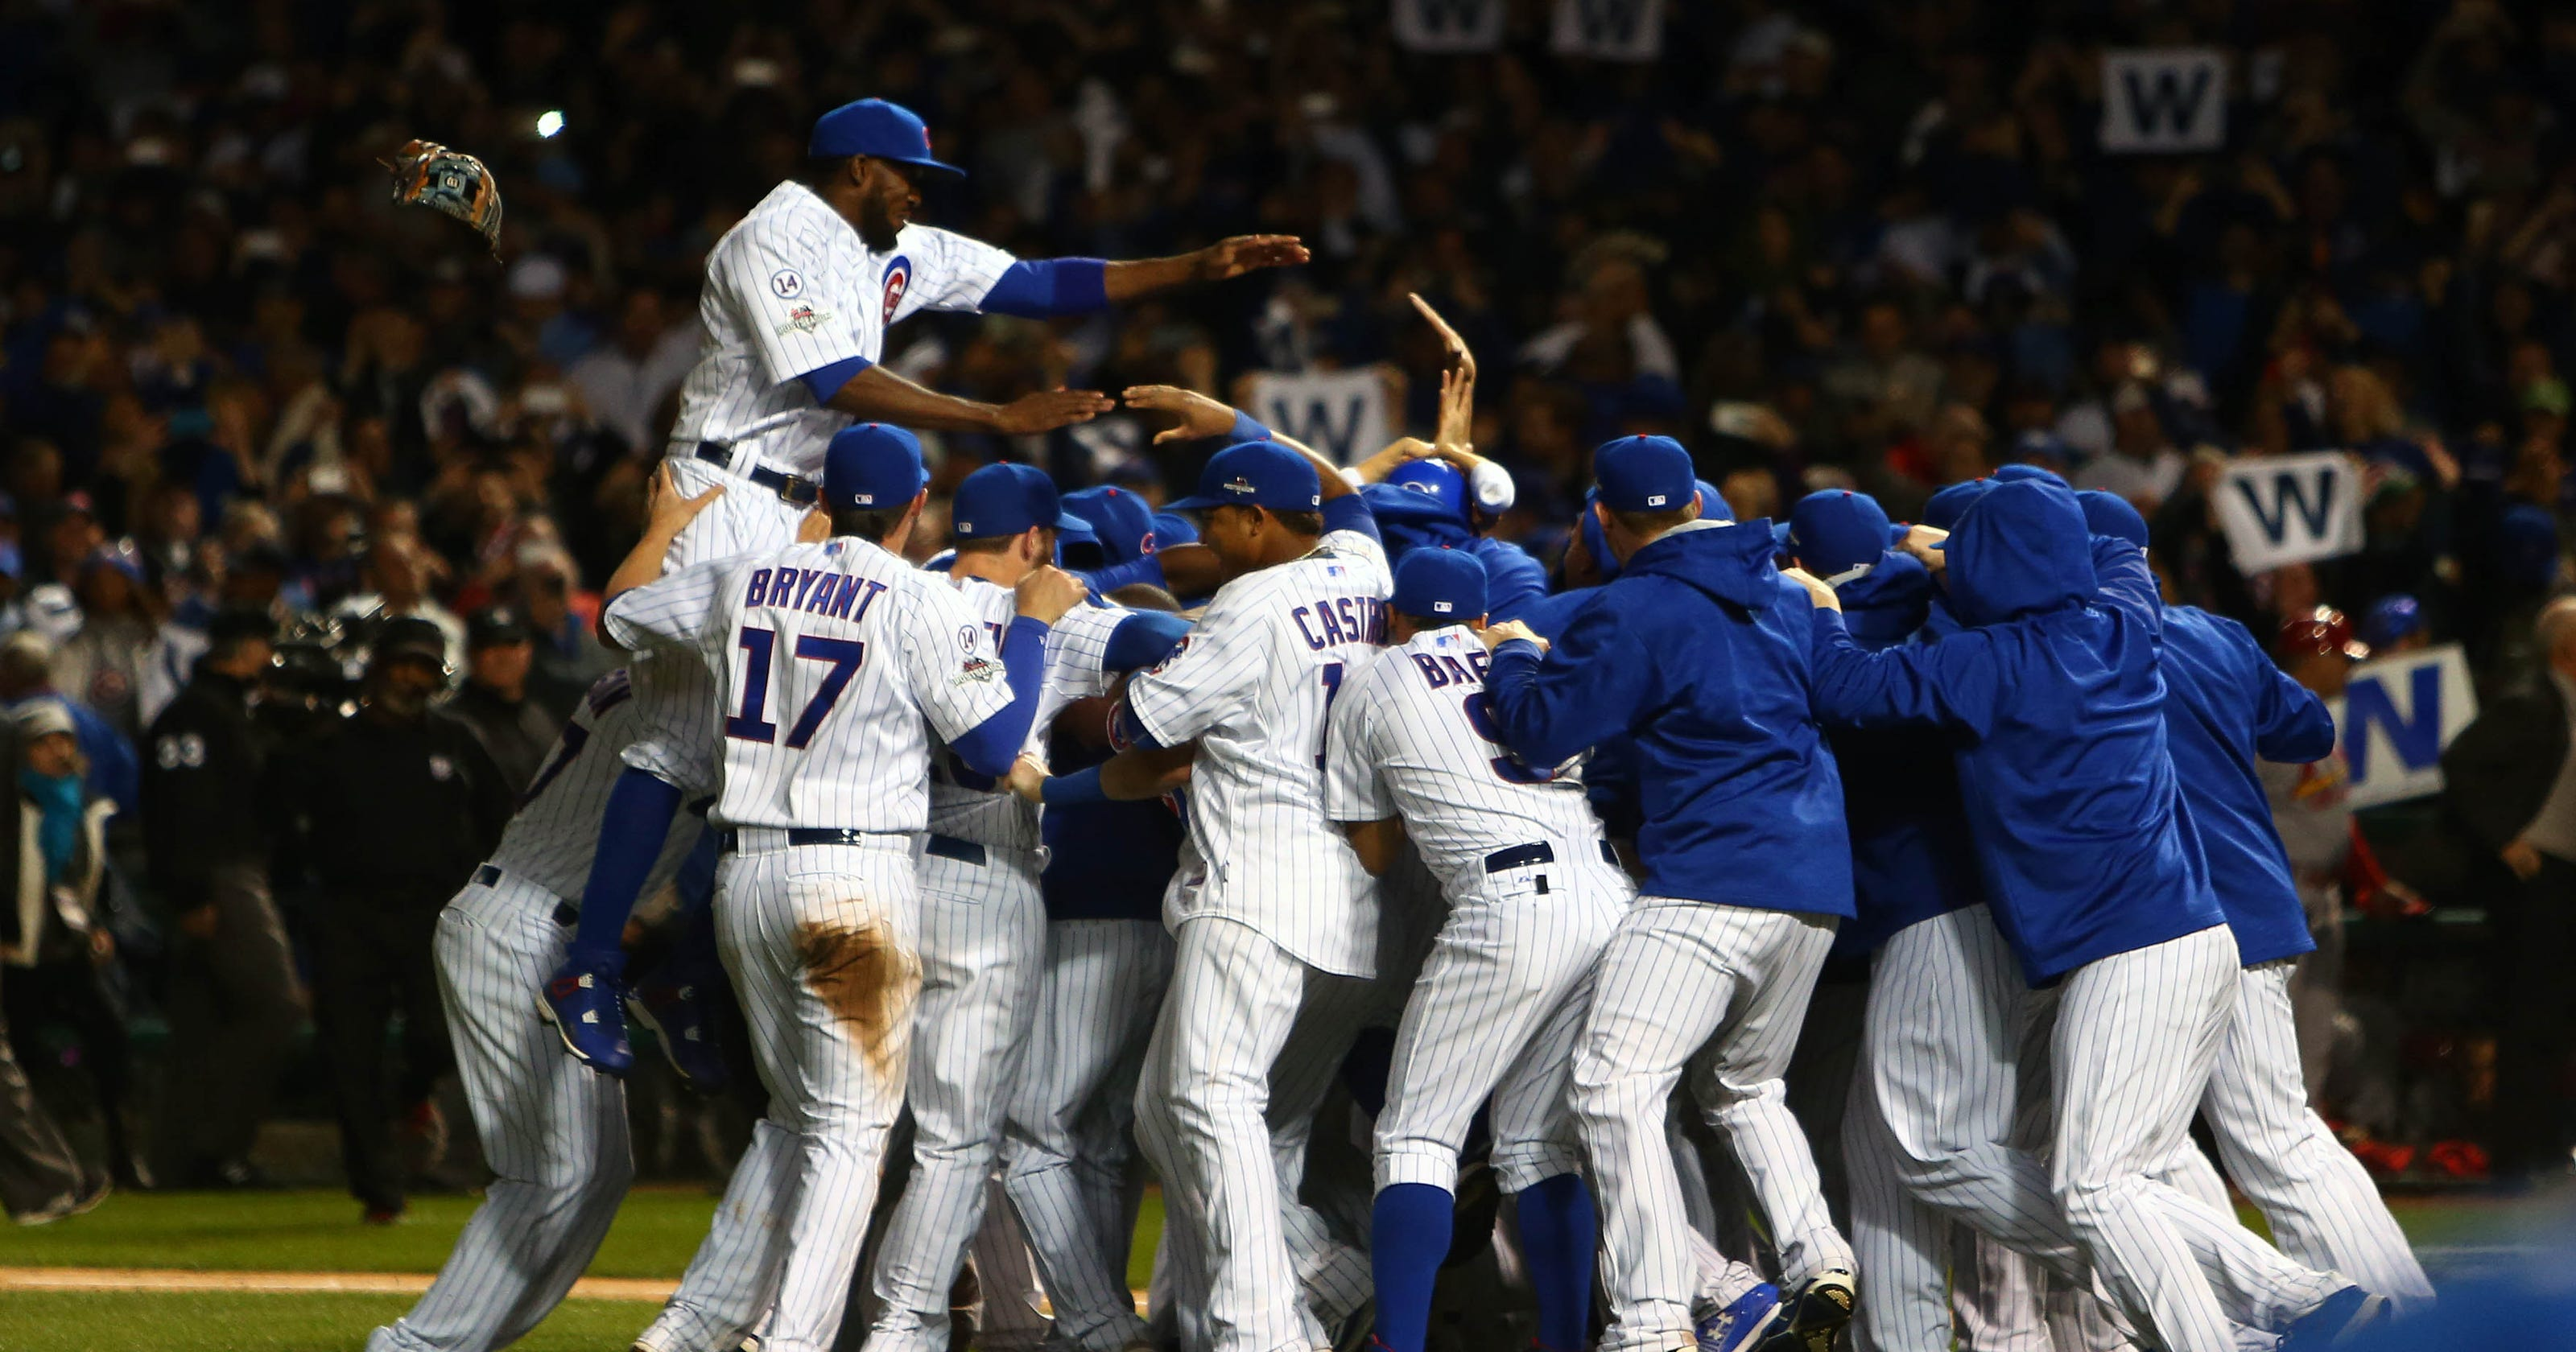 cubs knock out cardinals, advance to nlcs with wrigley party